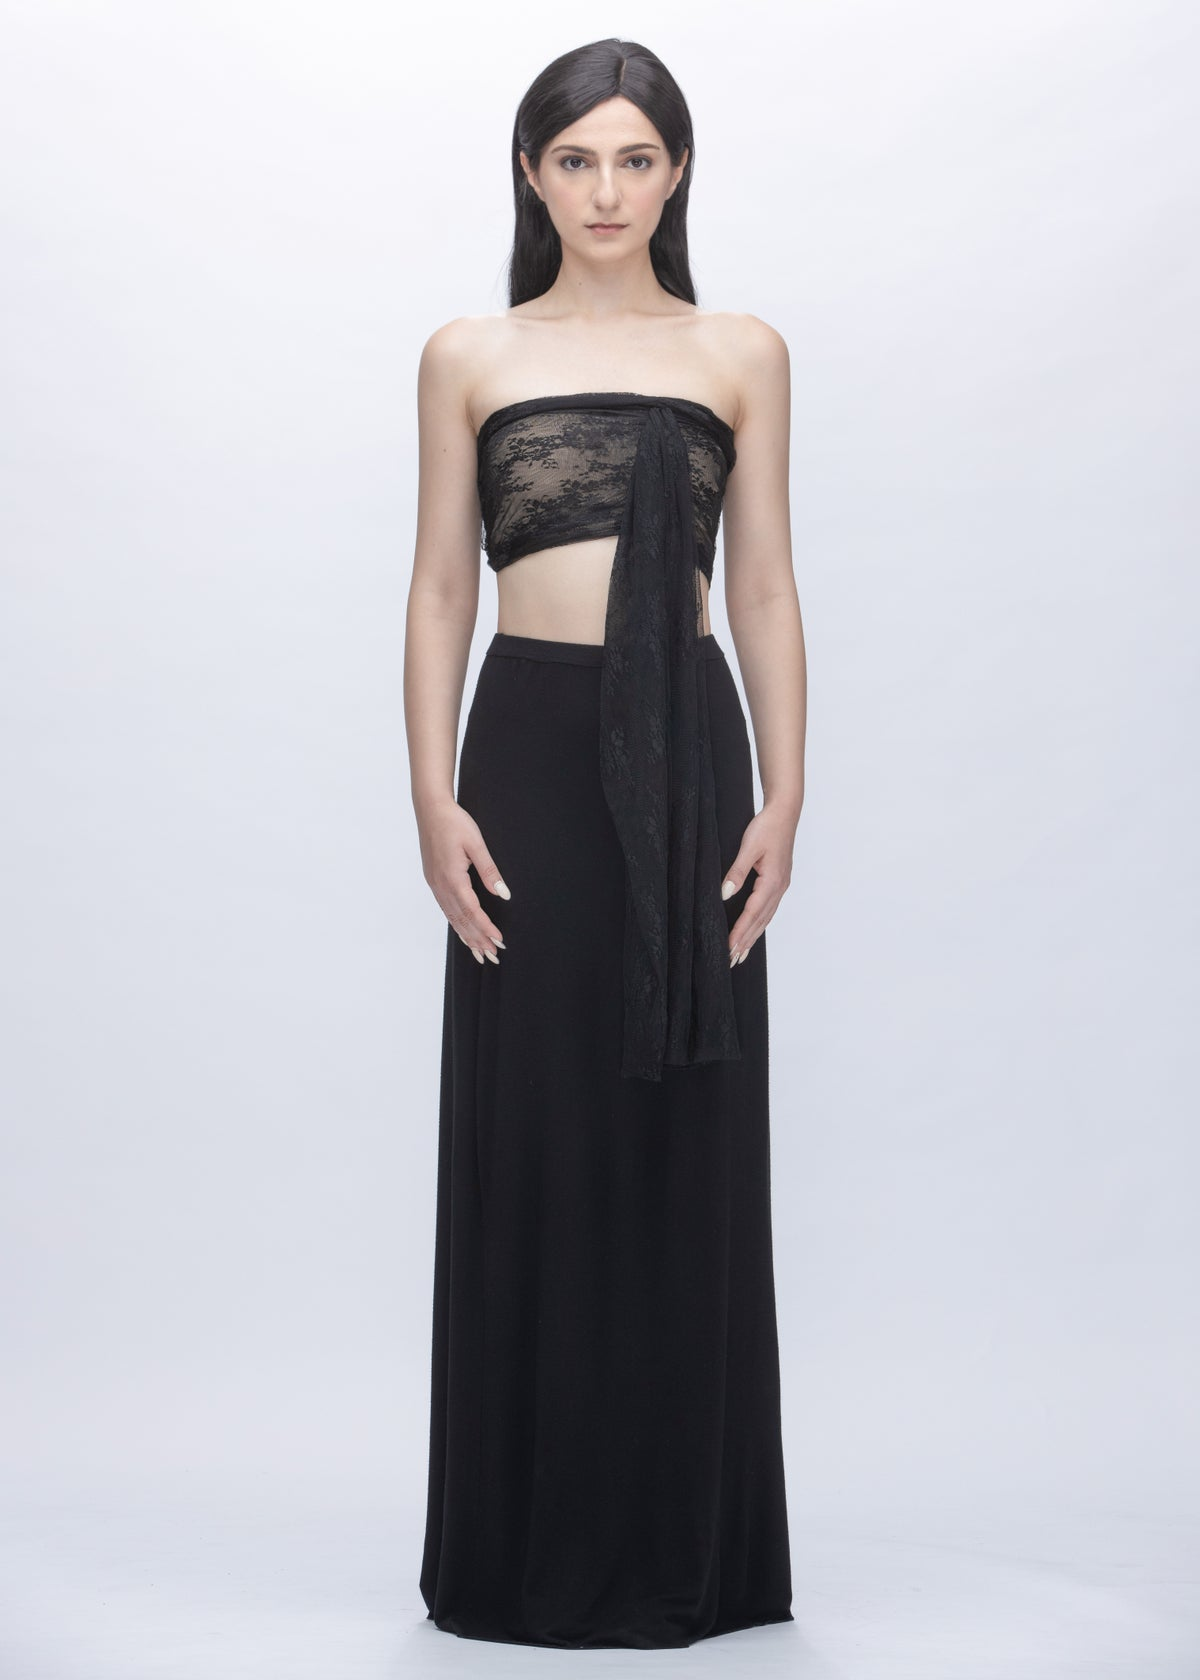 Image of Embroidered Lace Multi Way Tube Top in Black